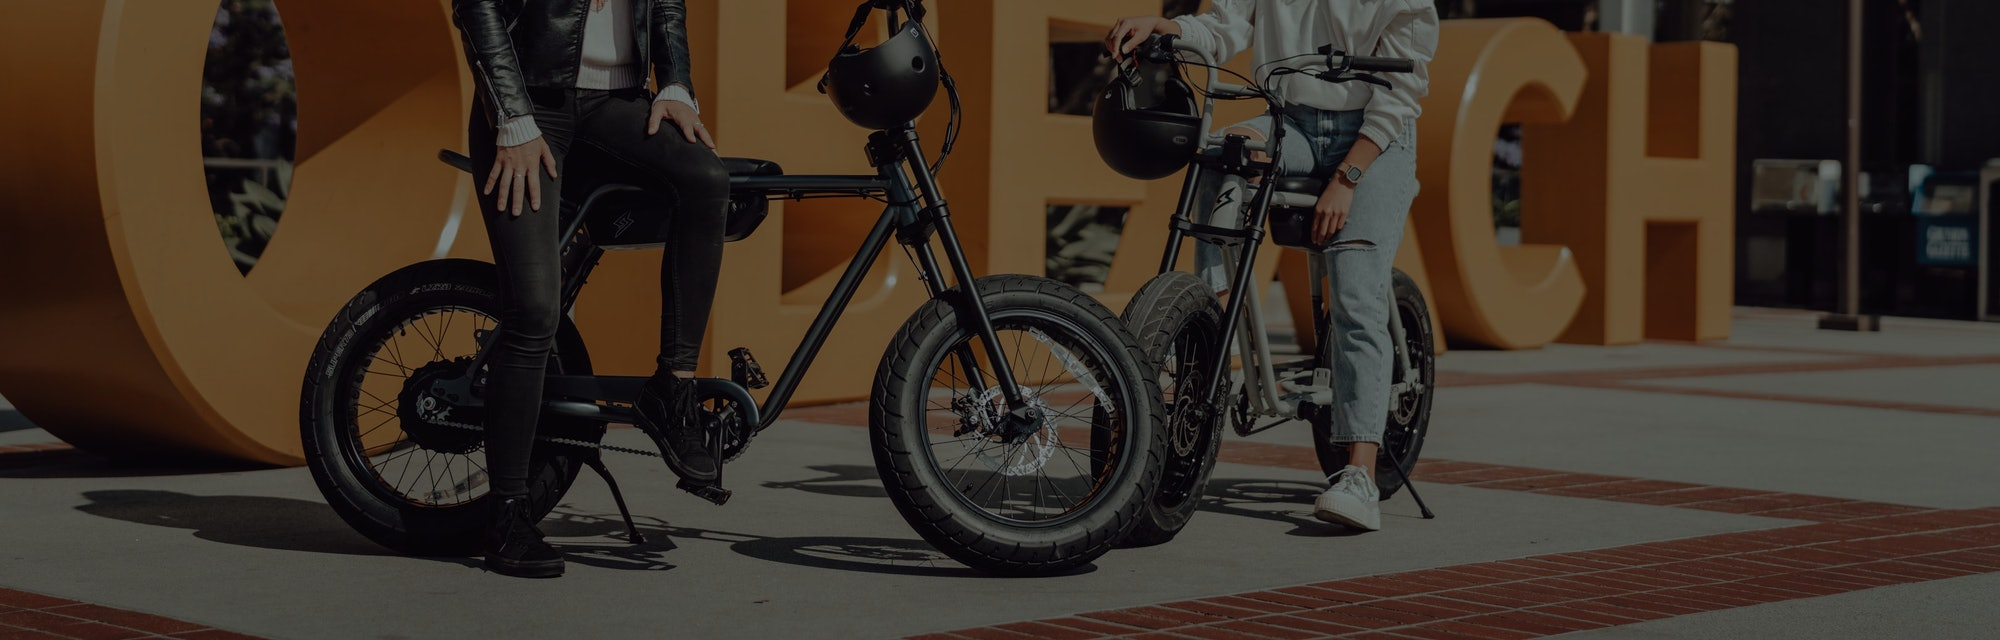 Super73 has introduced the Super73-ZX, it's latest lightweight electric bike.